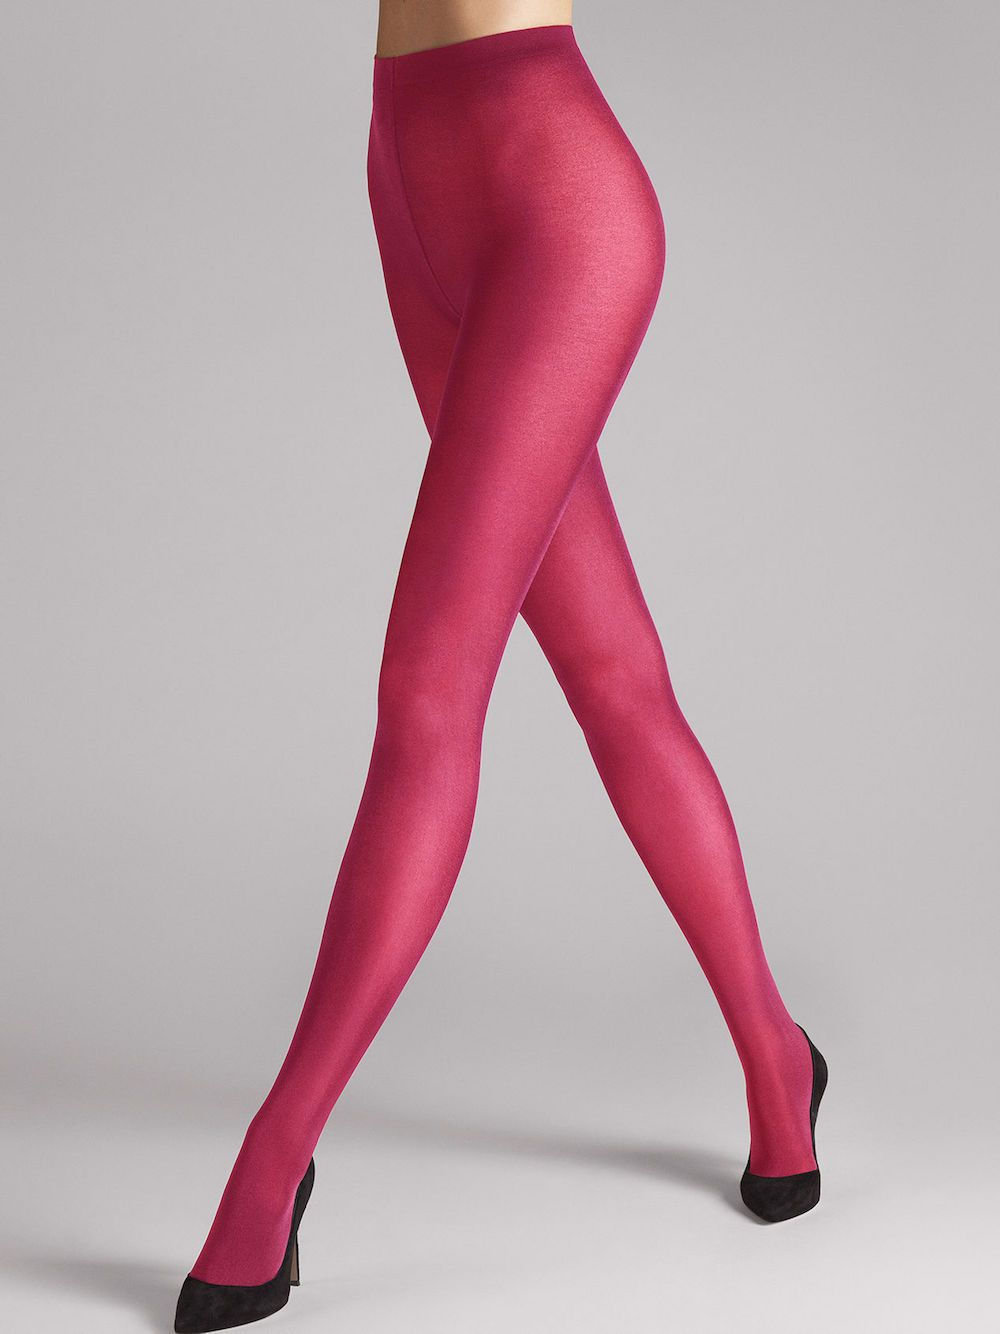 1ac2f3c402d Rainbow Tights  The Fall 2018 Trend You Can Wear Right Now